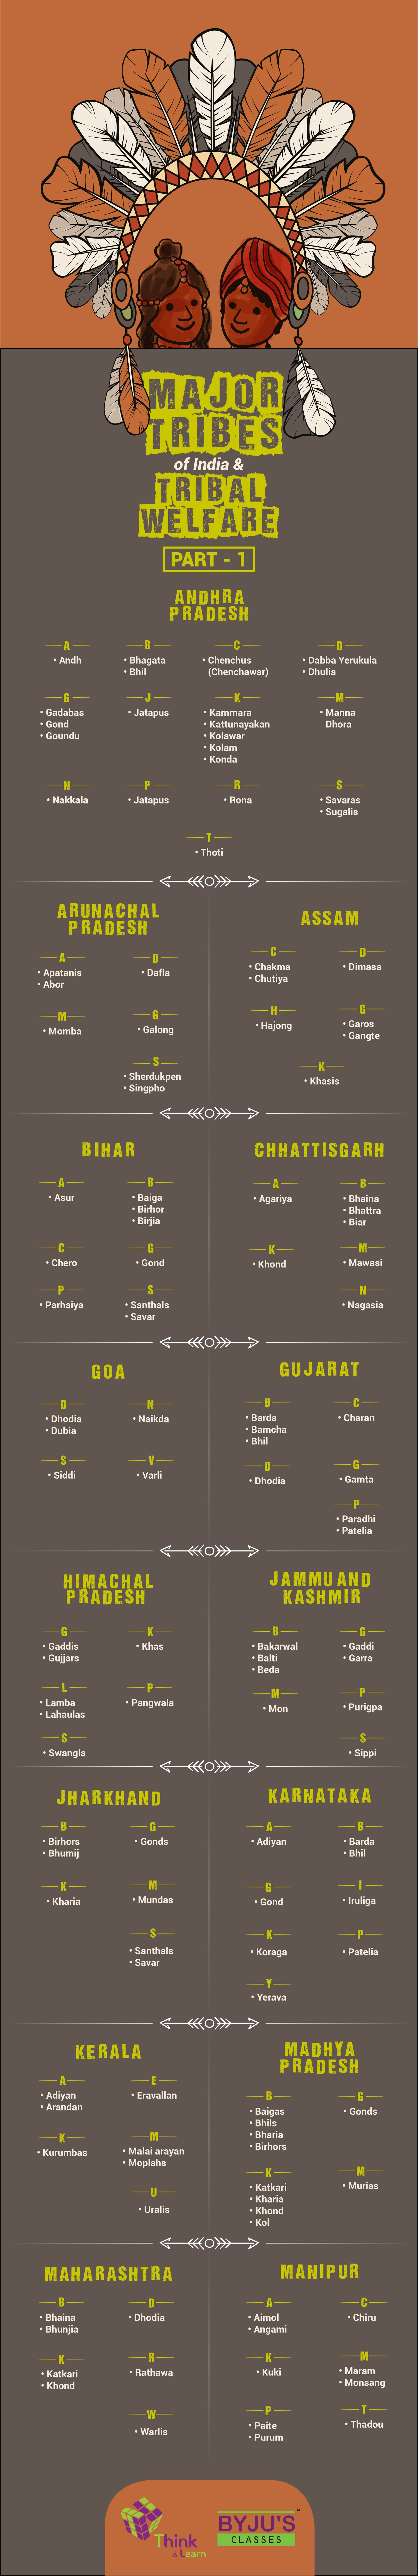 Tribes of India & Tribal Welfare